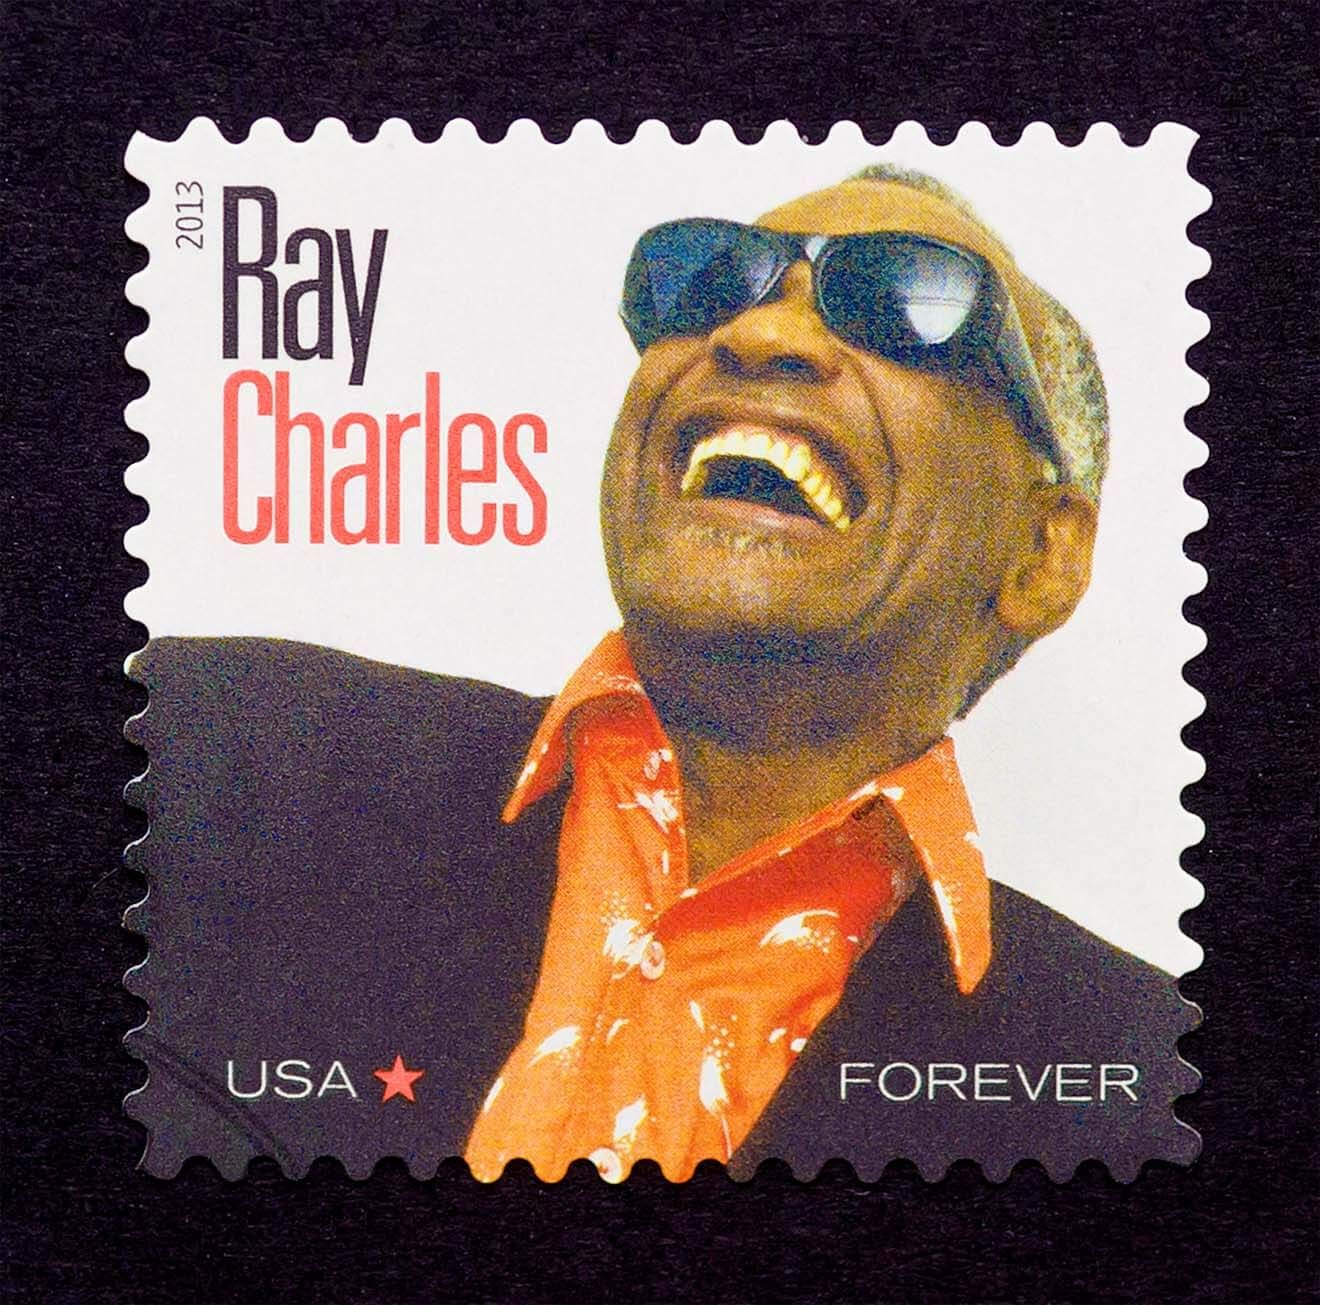 The Legendary Ray Charles